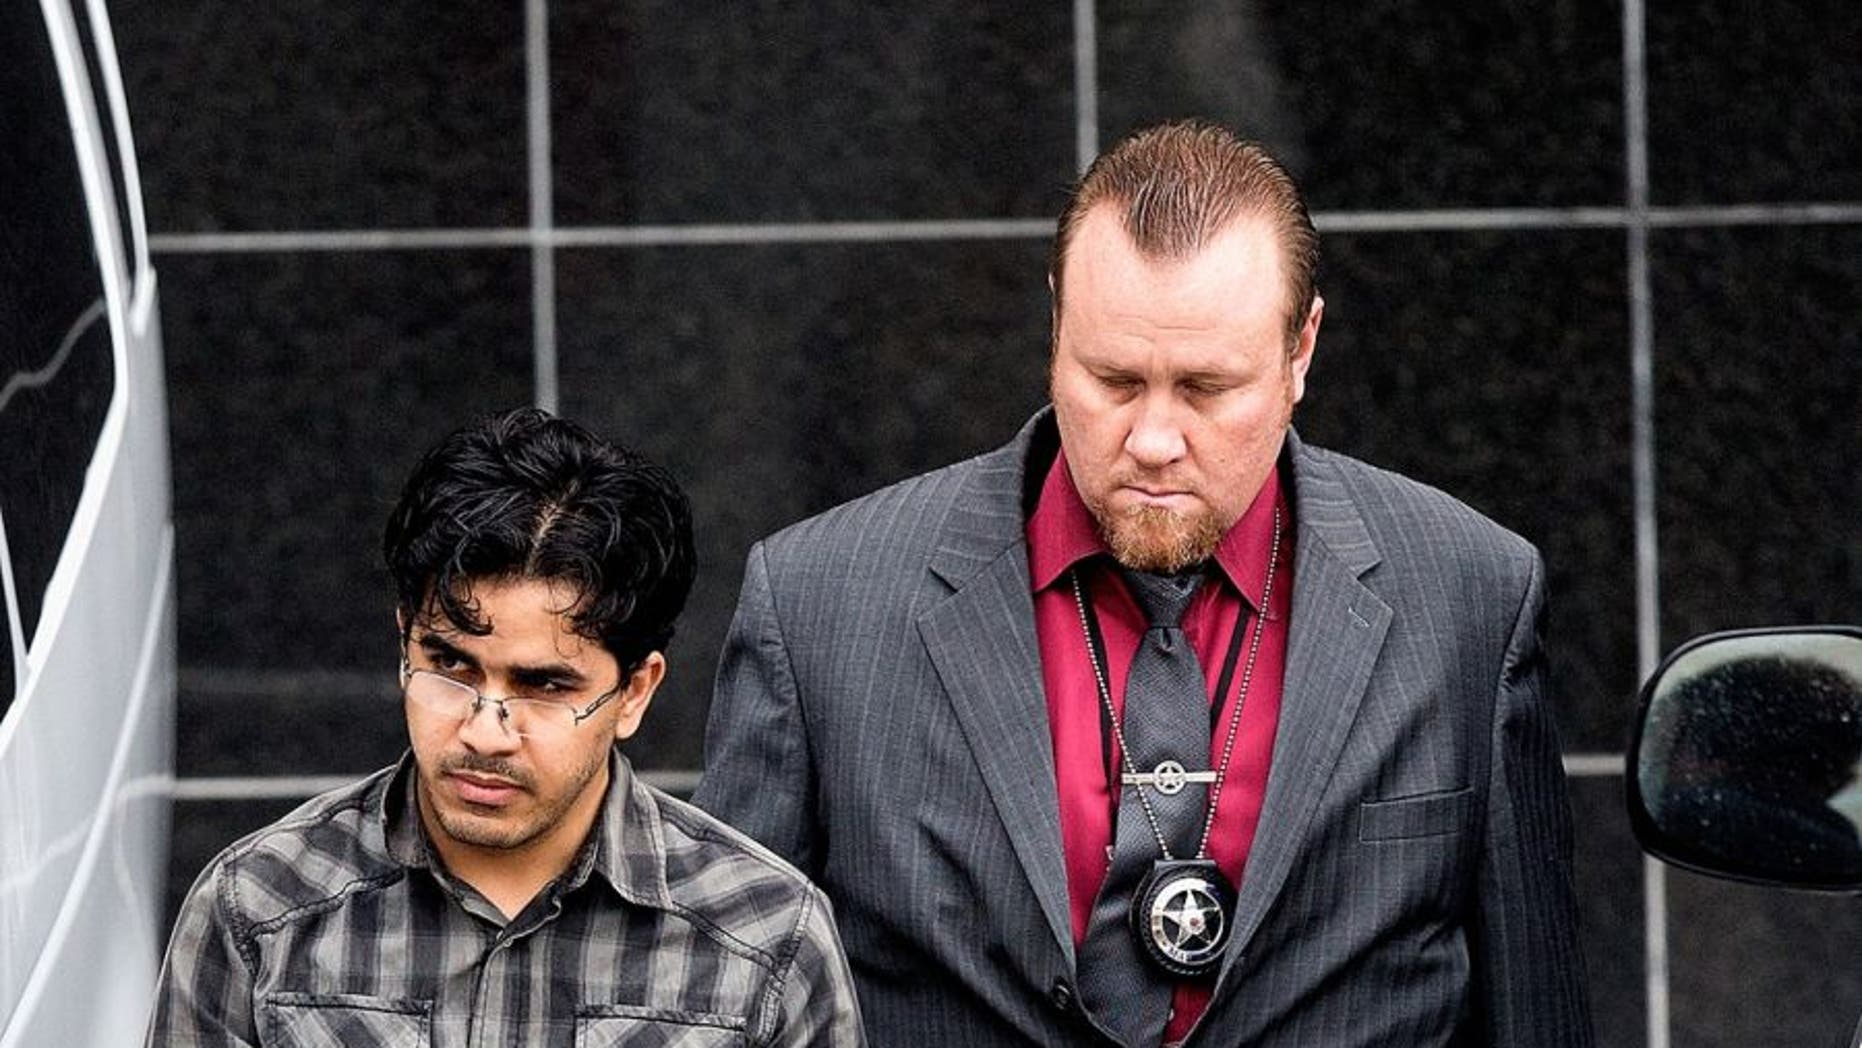 Omar Faraj Saeed Al Hardan, left, is escorted by U.S. Marshals from the Bob Casey Federal Courthouse on Friday, Jan. 8, 2016, in Houston.